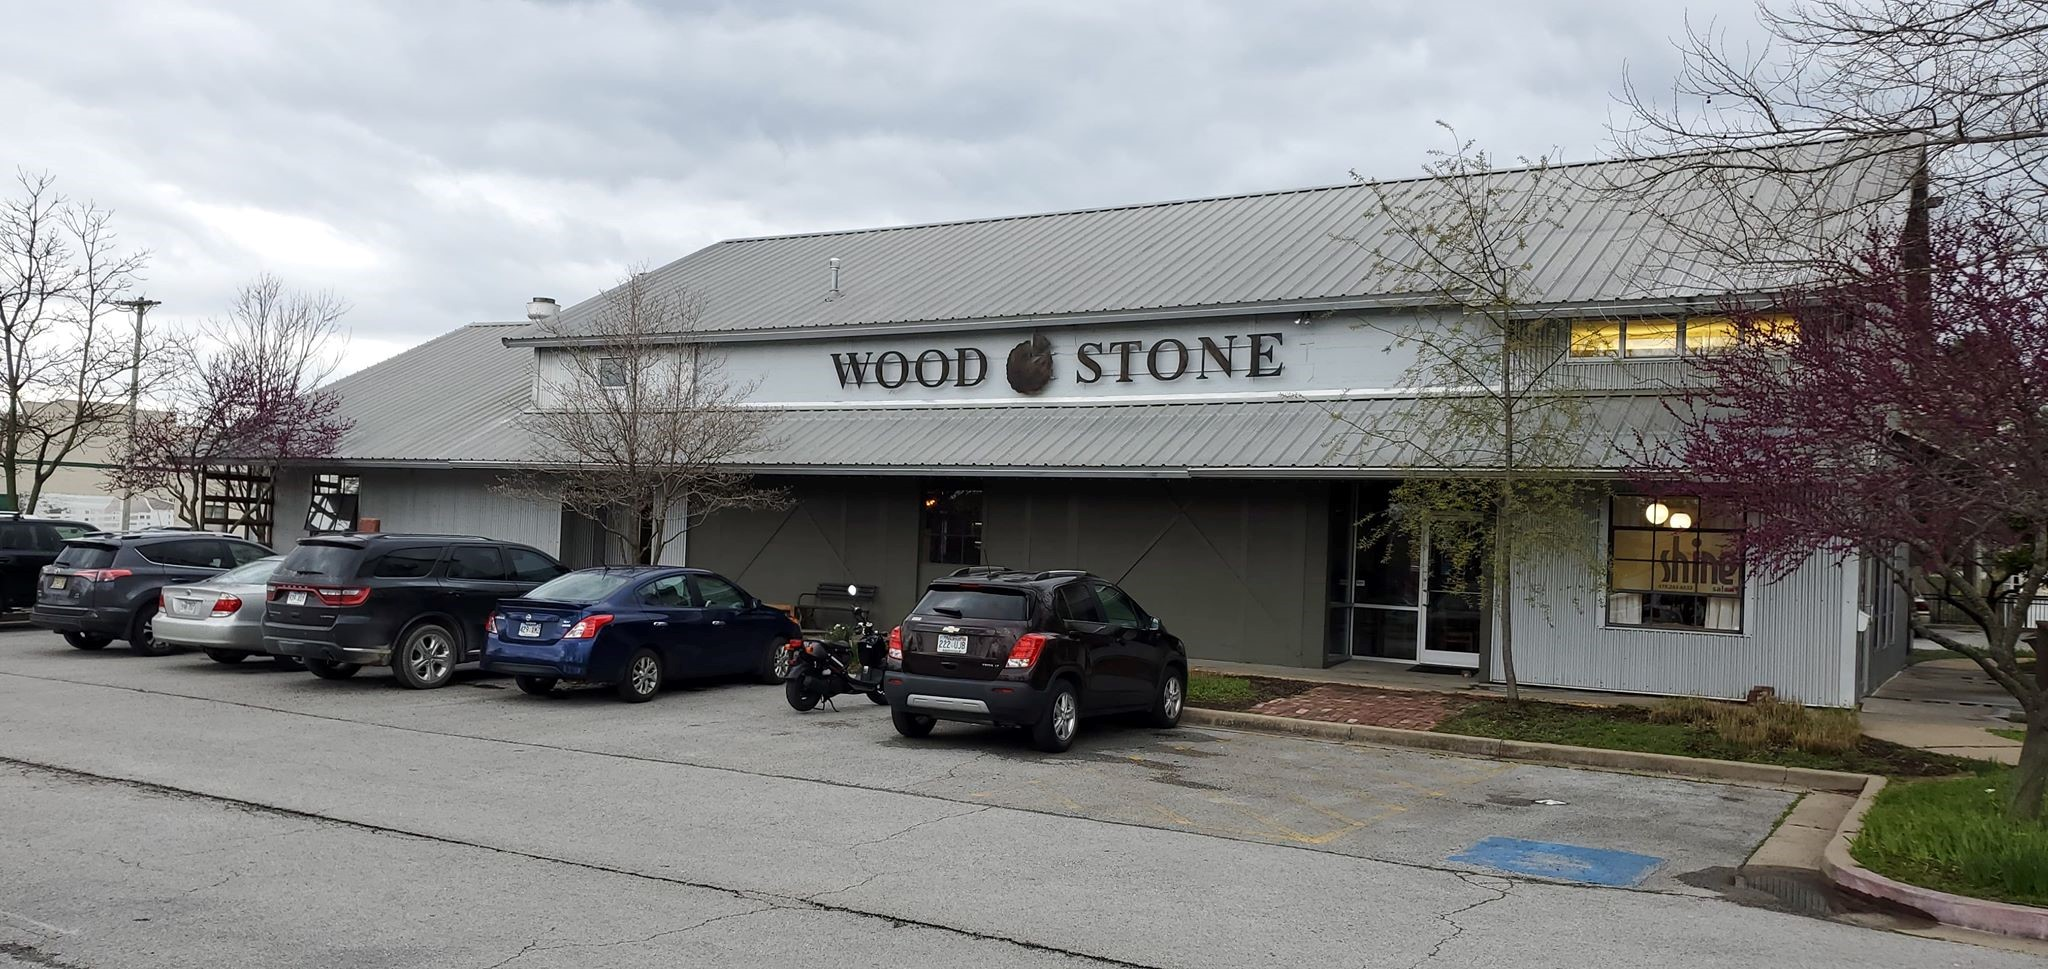 Wood Stone Craft Pizza + Bar Downtown Fayetteville